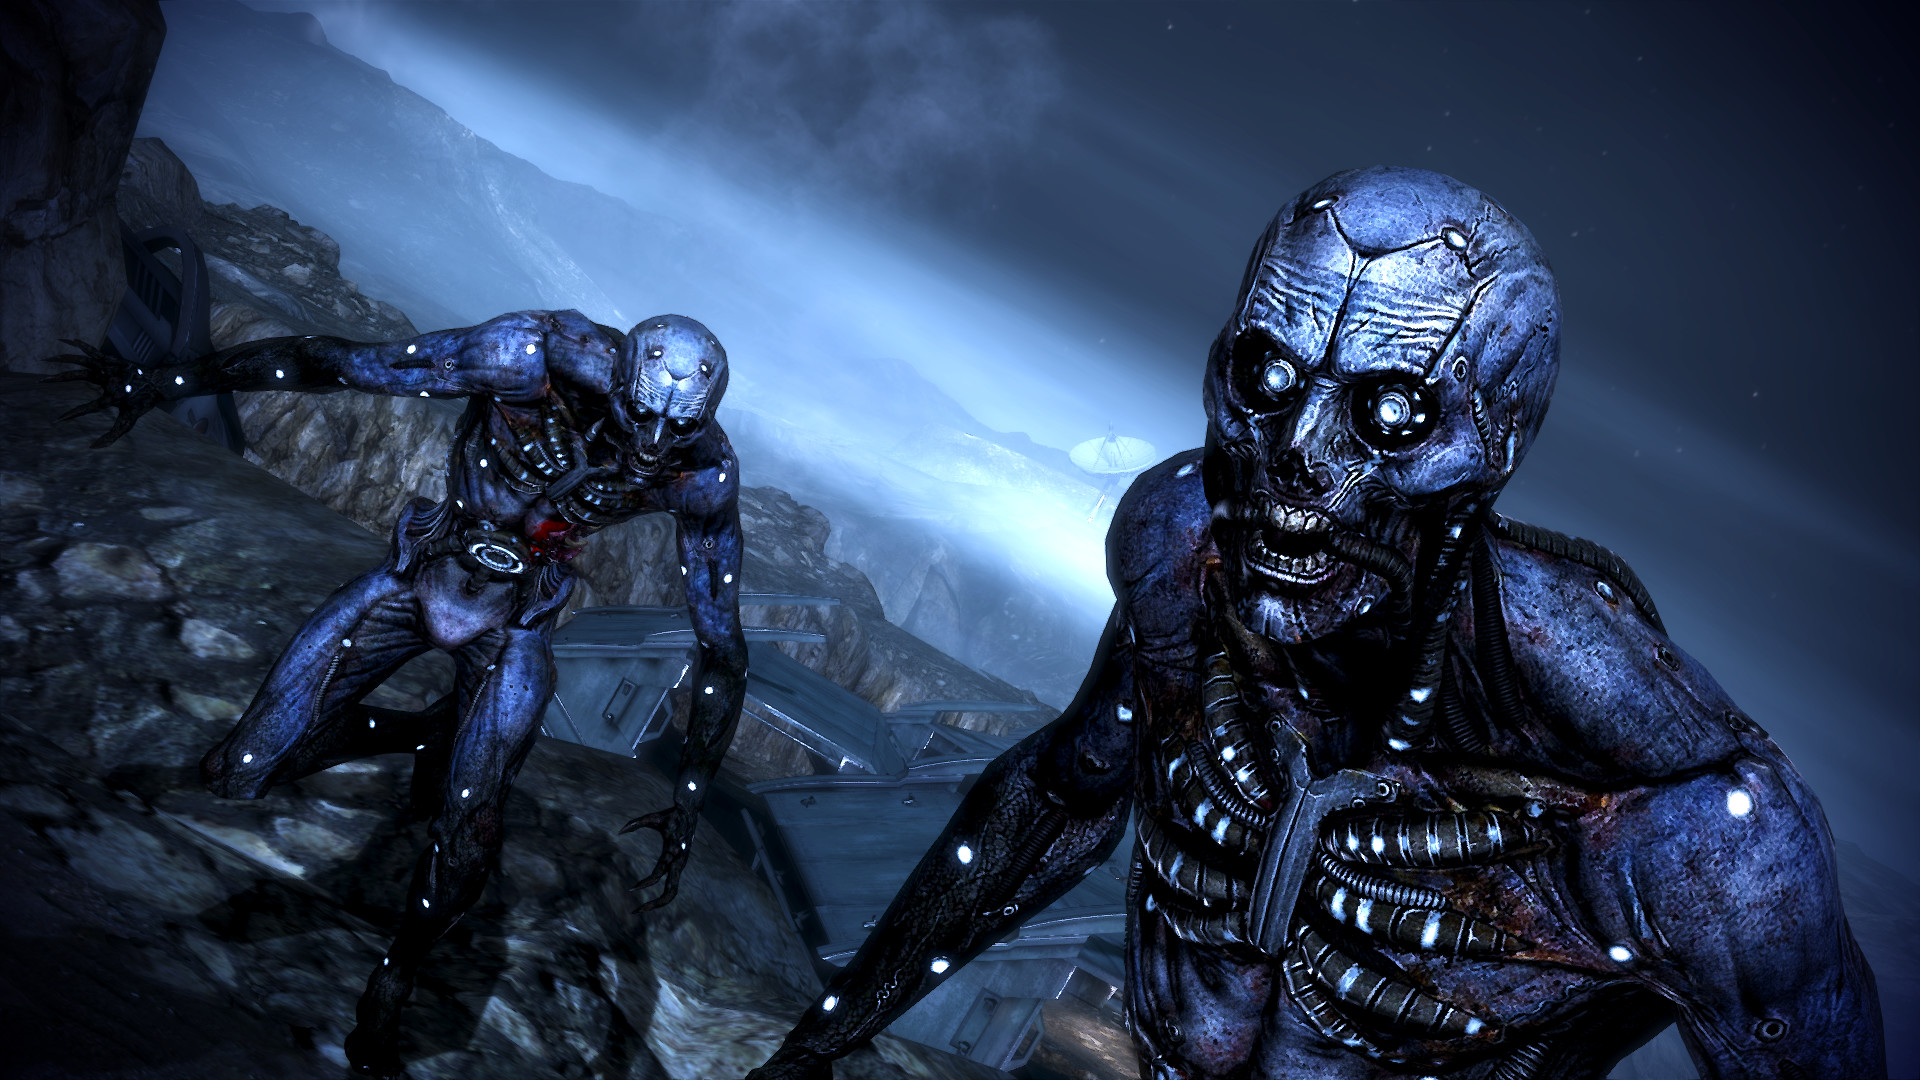 Mass Effect 3 Reapers | War Against The Reapers (ME3) |